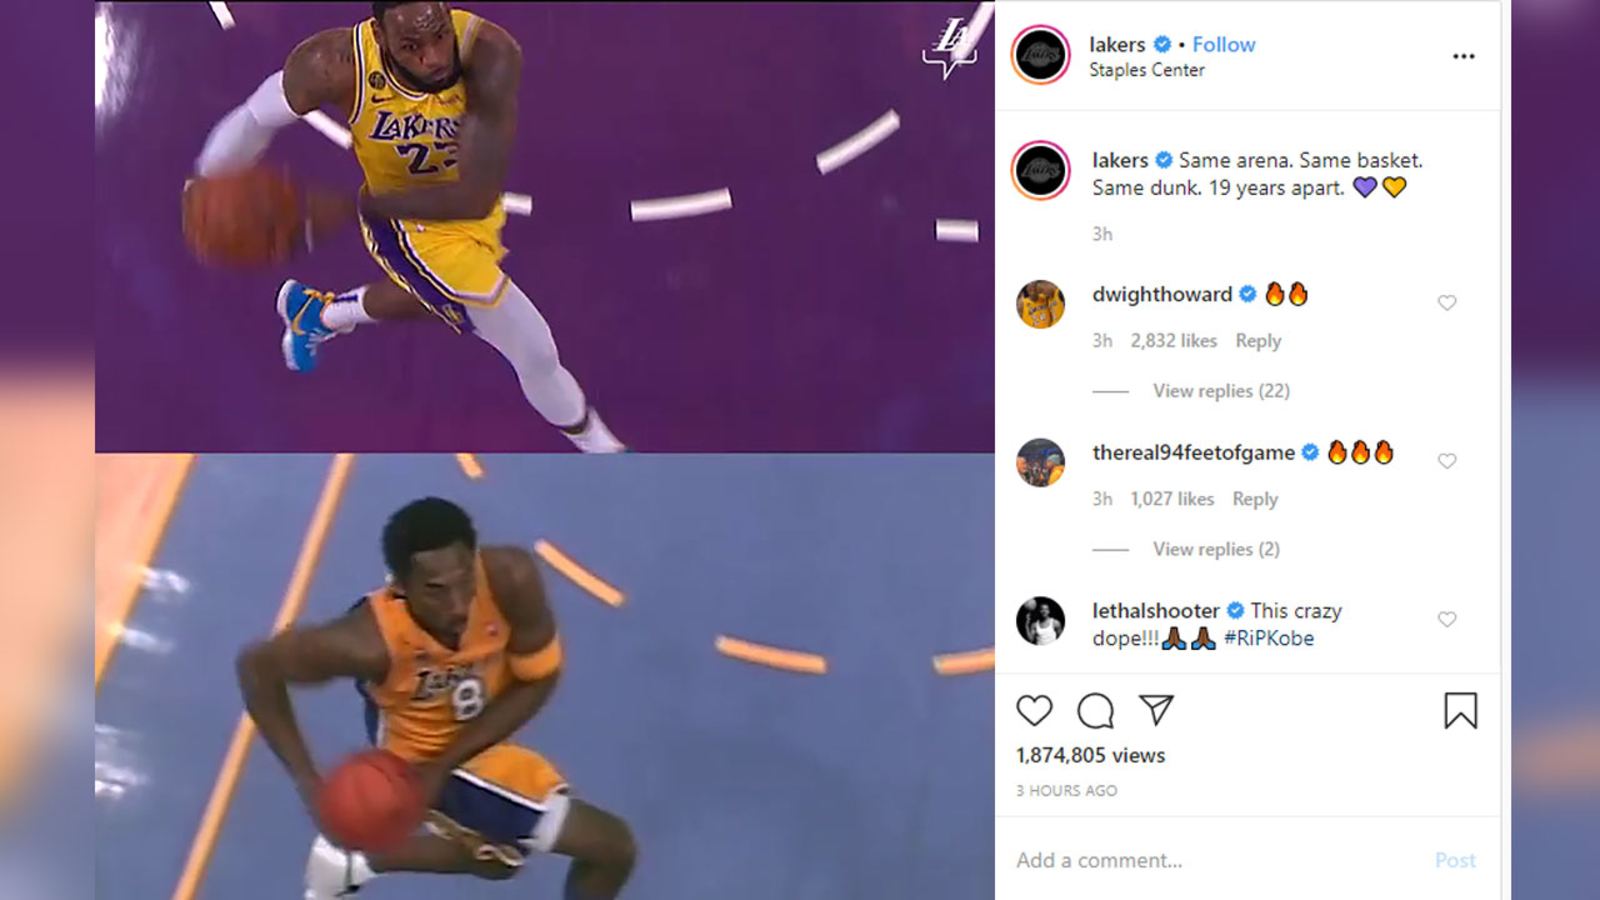 Lebron James And Kobe Bryant Become Dunking Twins In Stunning Side By Side Video Released By Lakers Abc7 Los Angeles